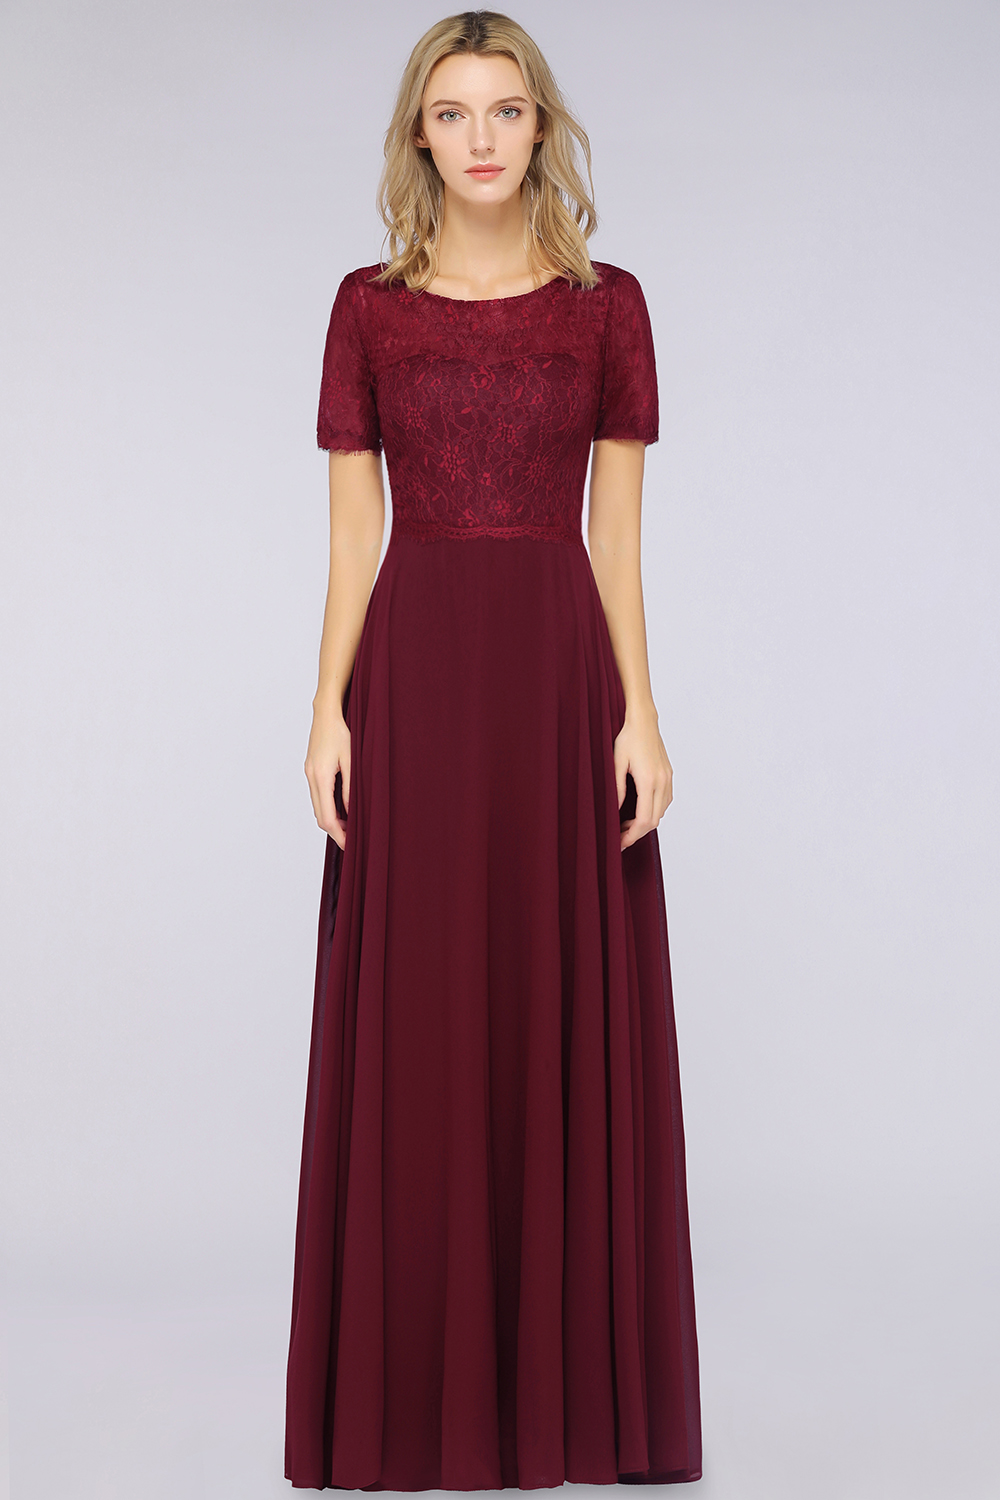 BMbridal Chic Lace Long Burgundy Backless Bridesmaid Dress With Short-Sleeves